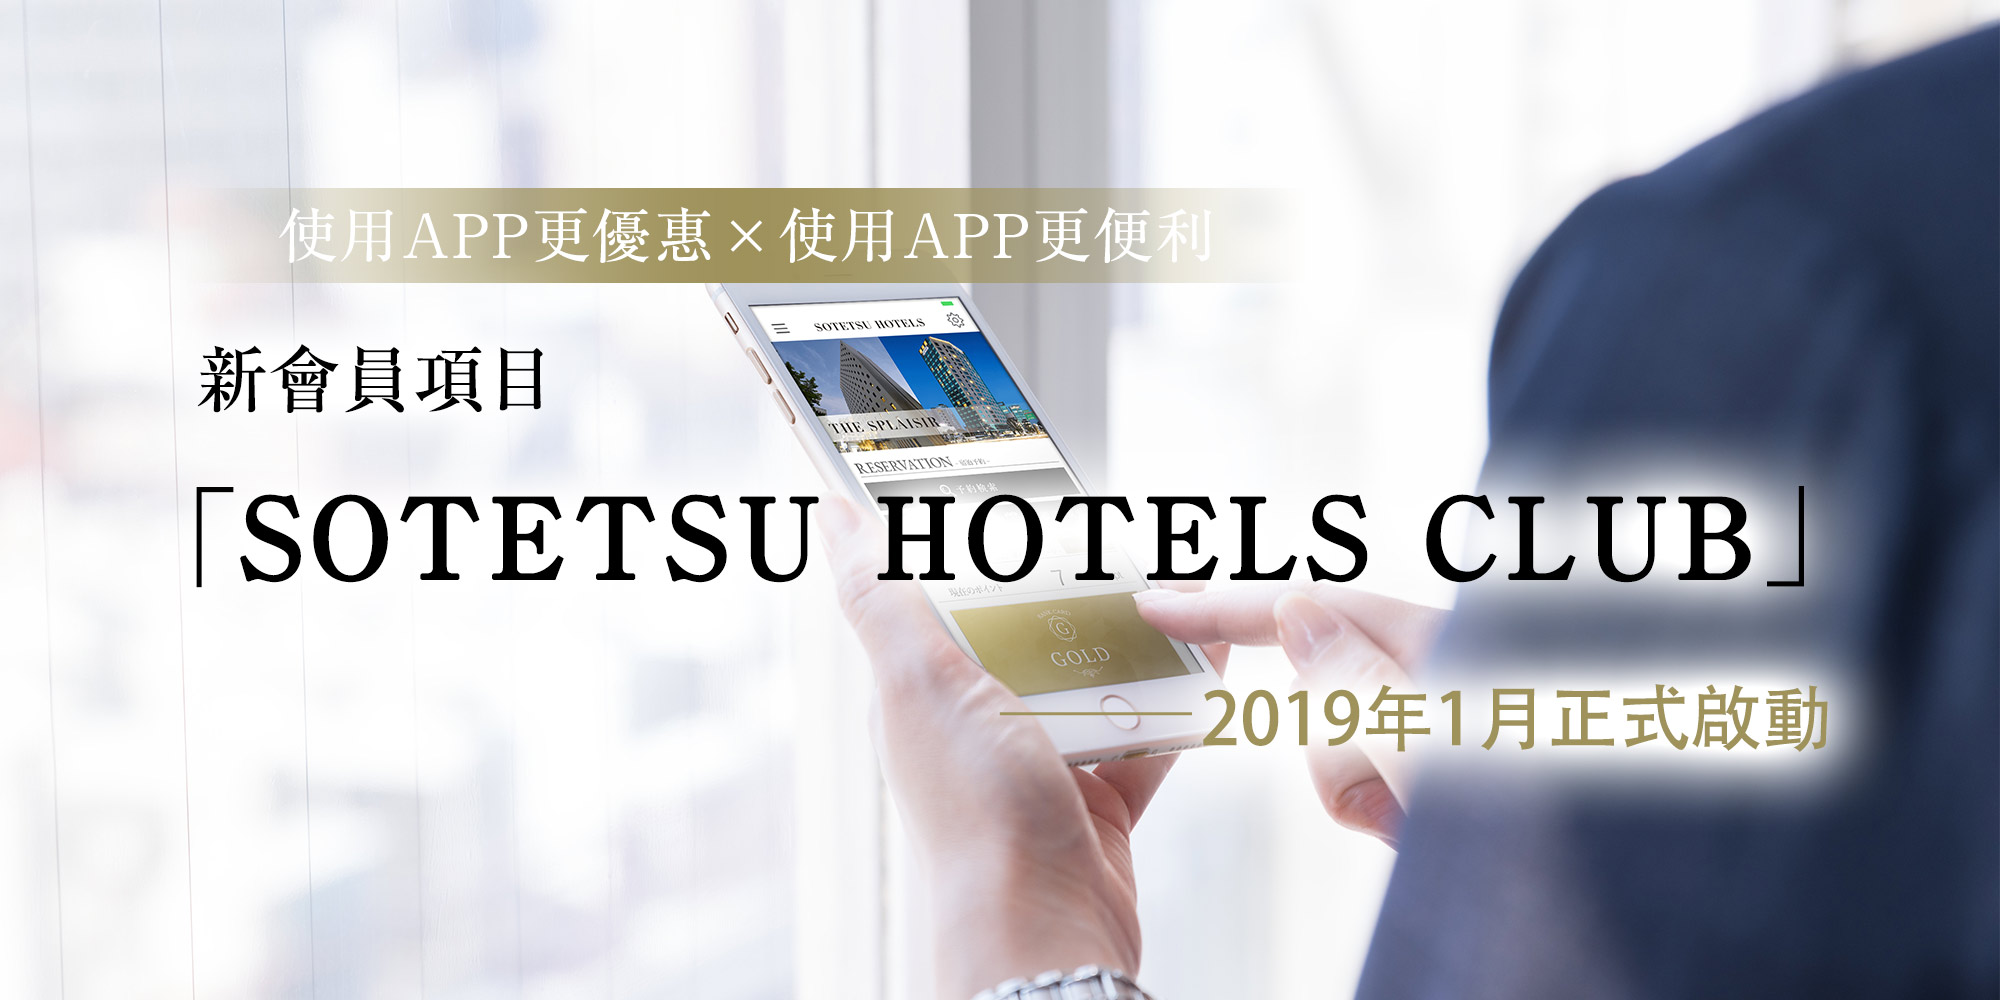 FRESA CLUB將變更為新會員計畫「SOTETSU HOTELS CLUB」。